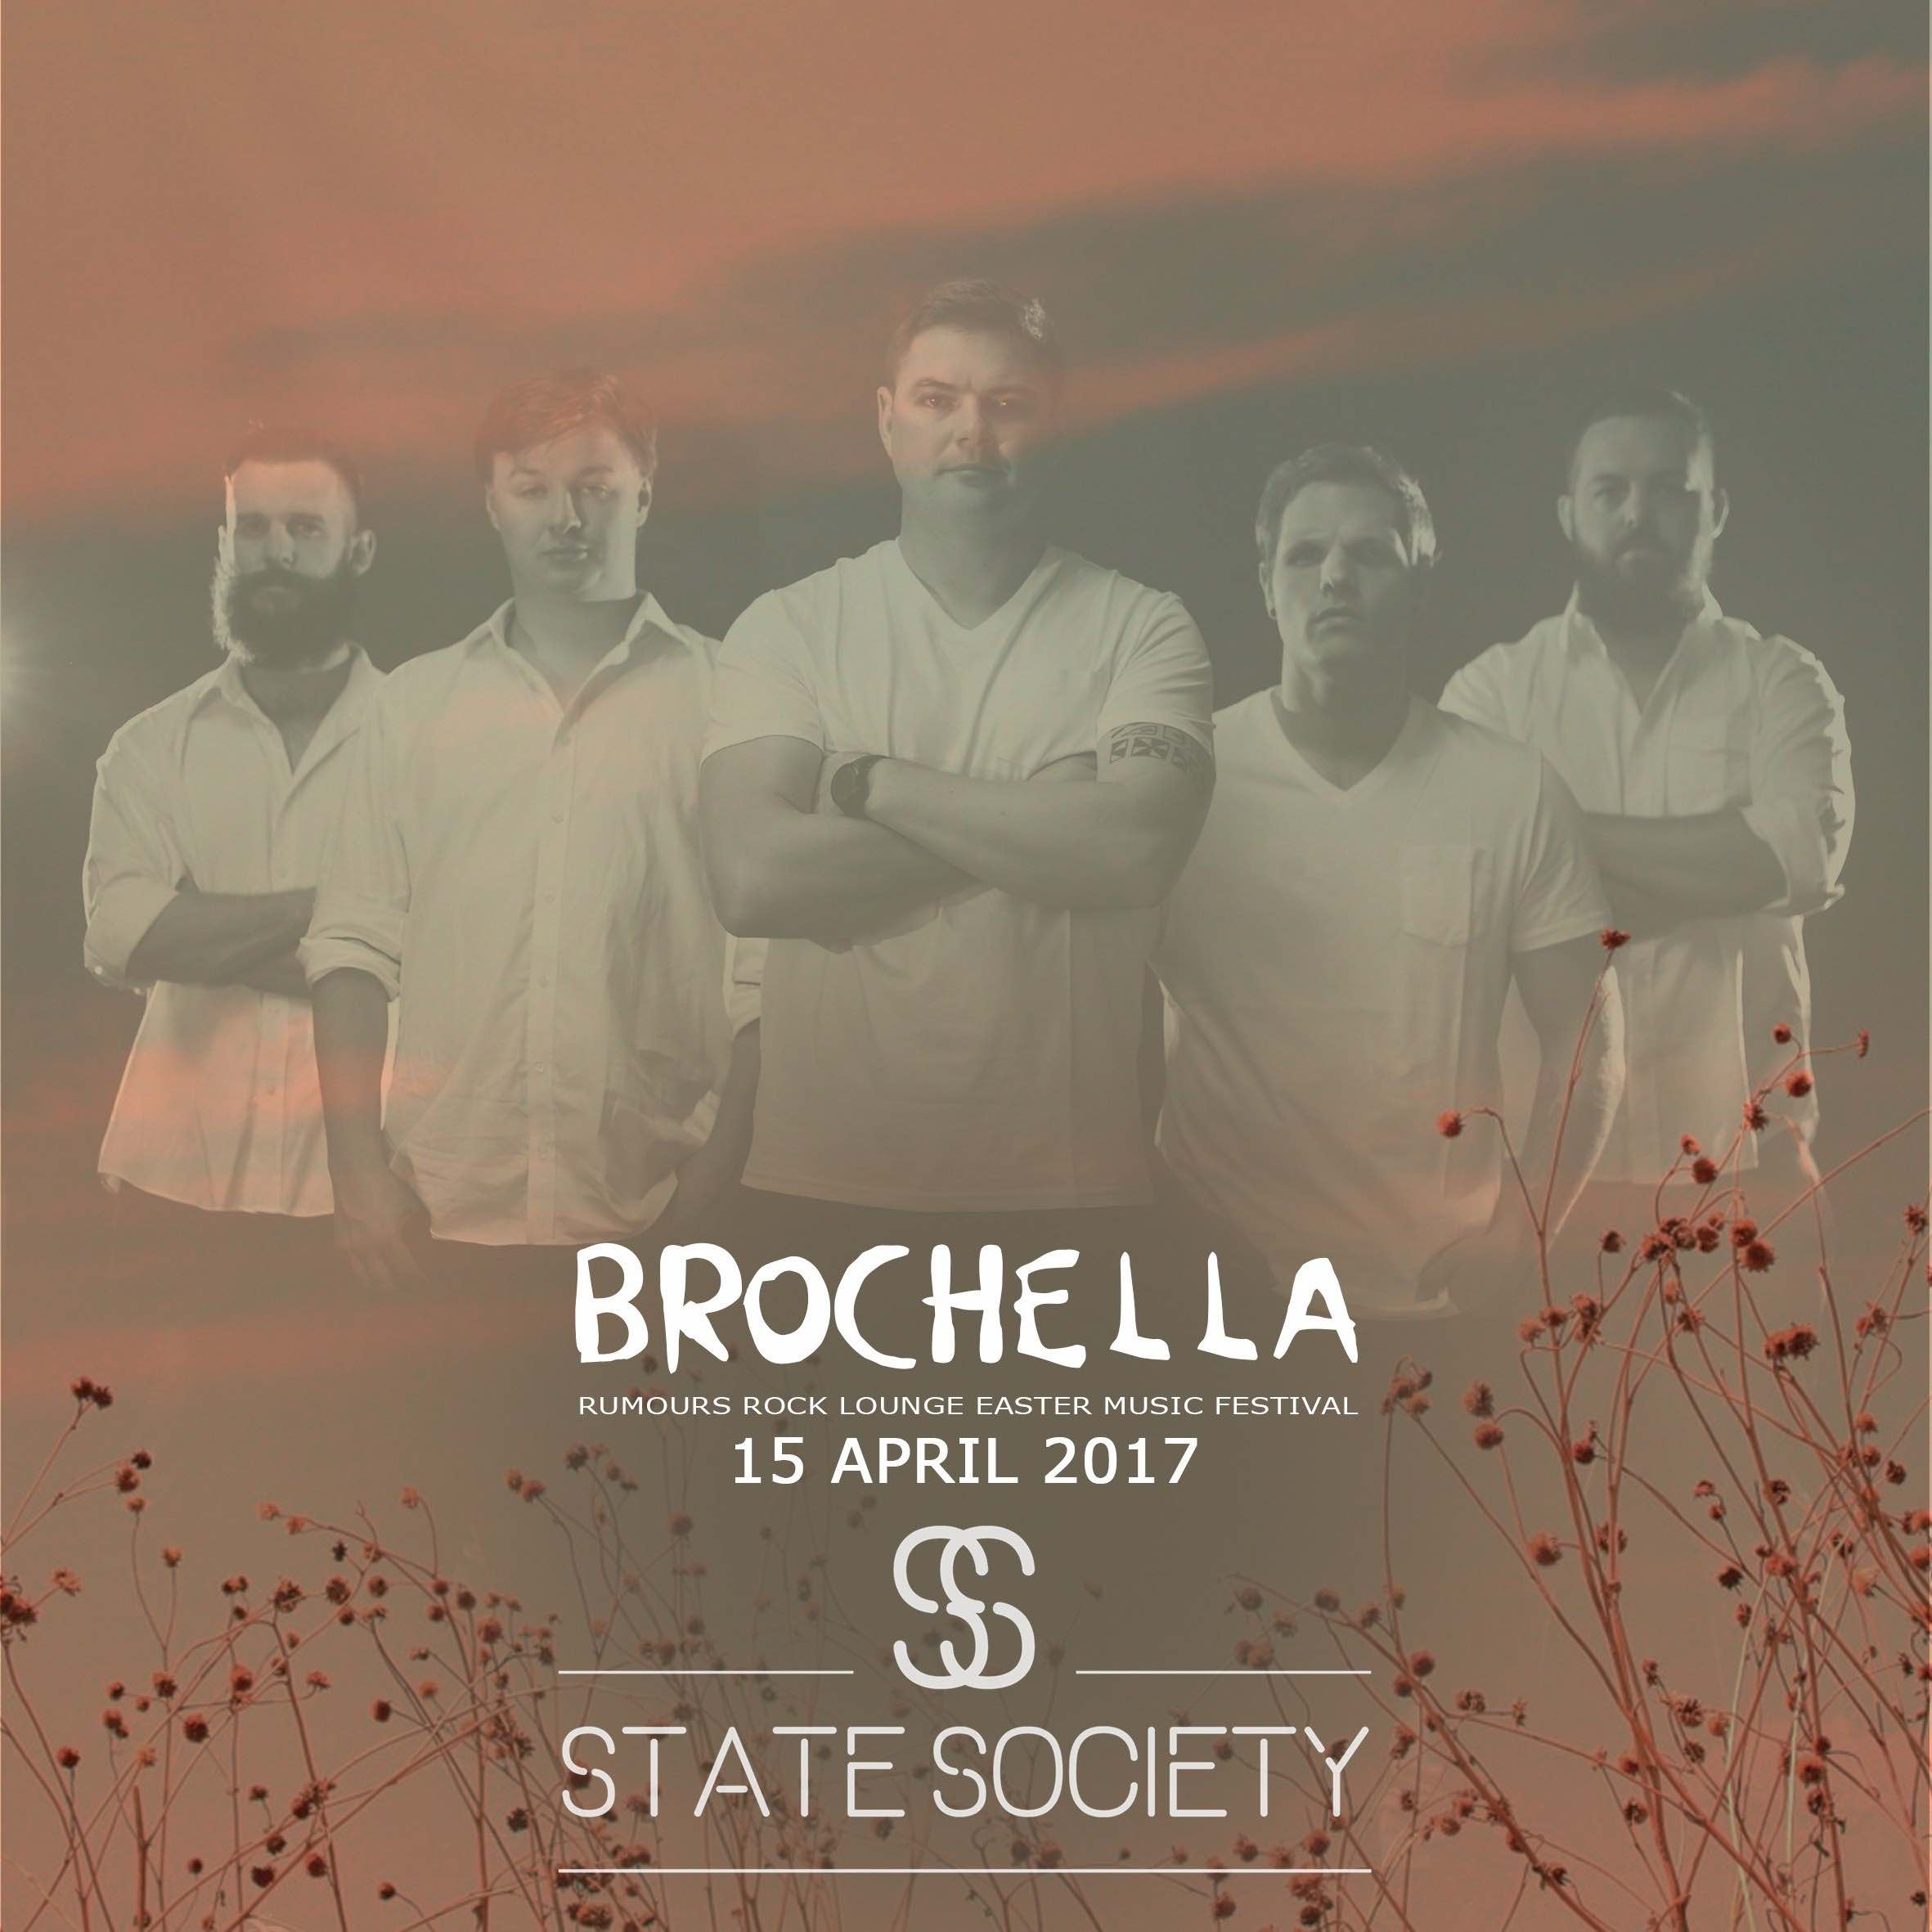 We interview State Society about Brochella Festival